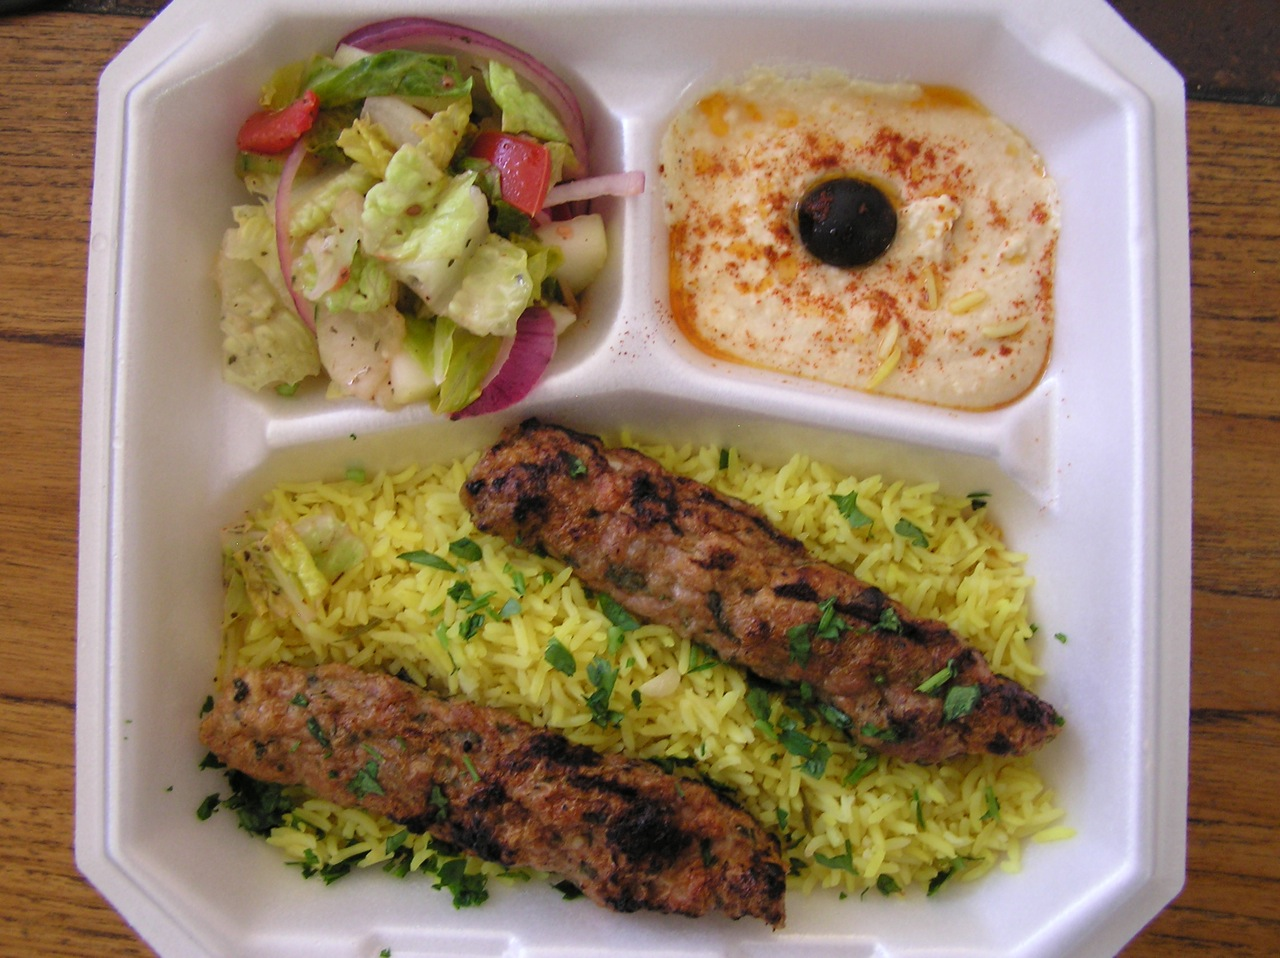 Carry-out food from Marhaba Restaurant P5140122.jpg